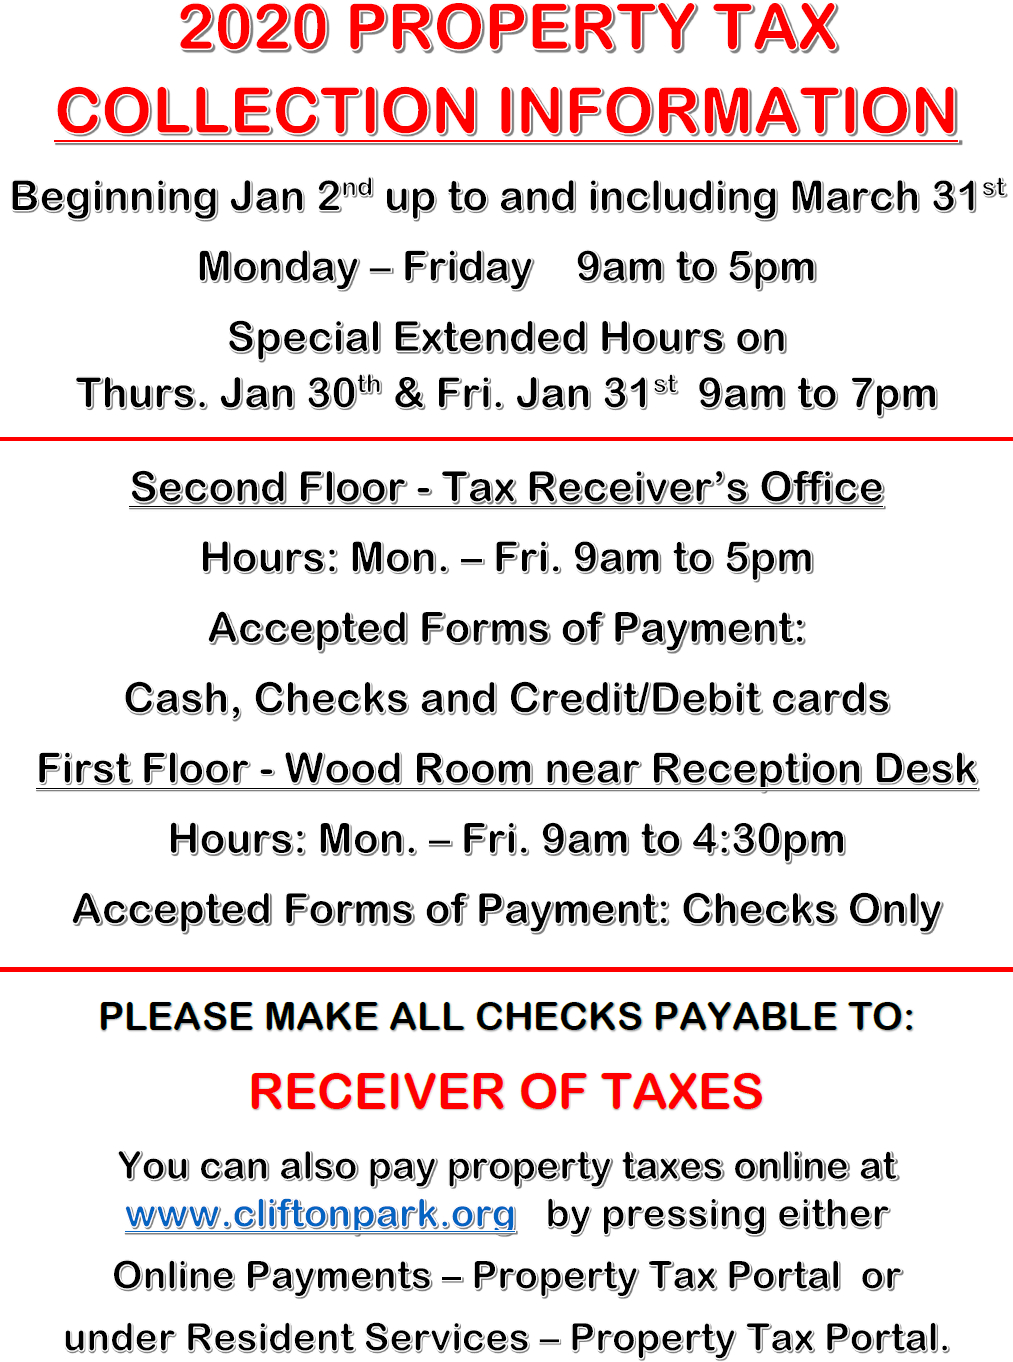 2020 Property Tax Collection Information within Tax Desk Card For 2020